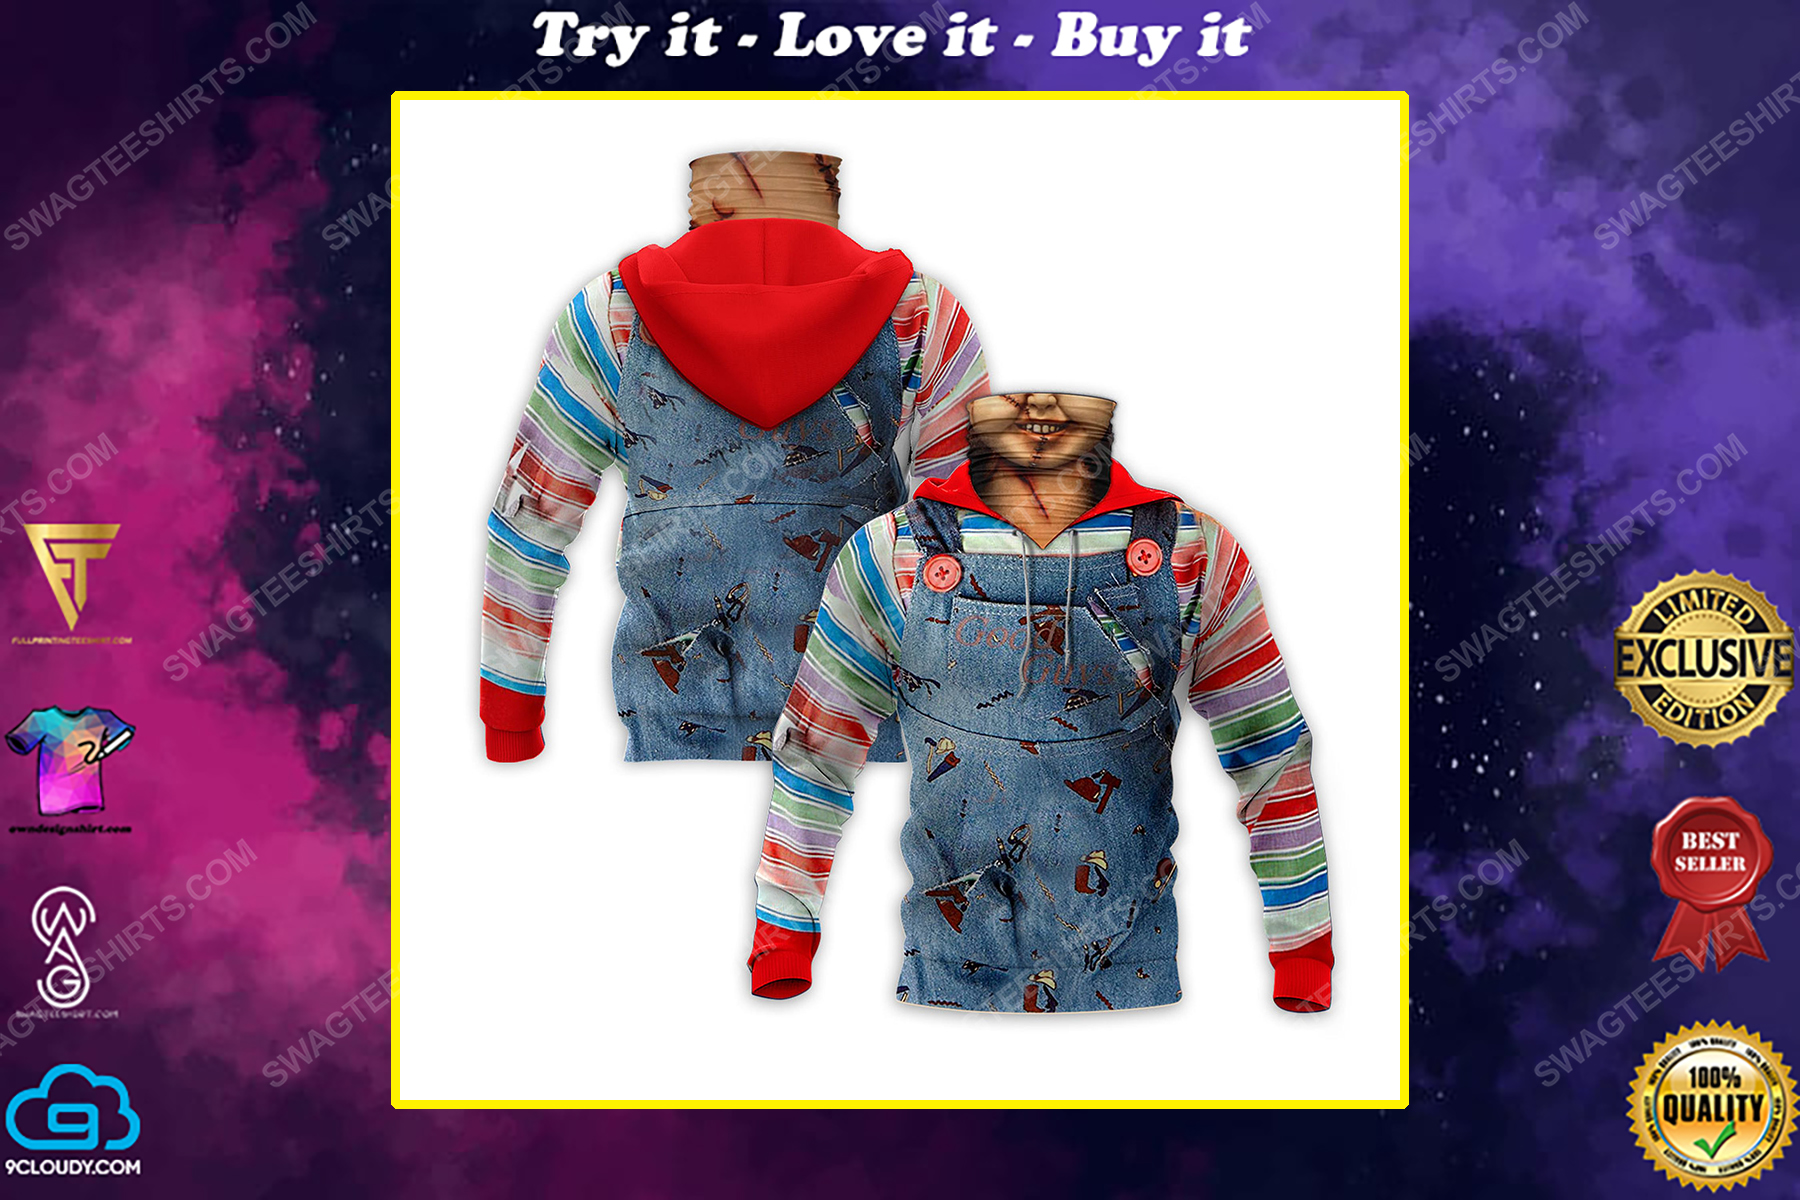 Chucky child's play for halloween full print mask hoodie